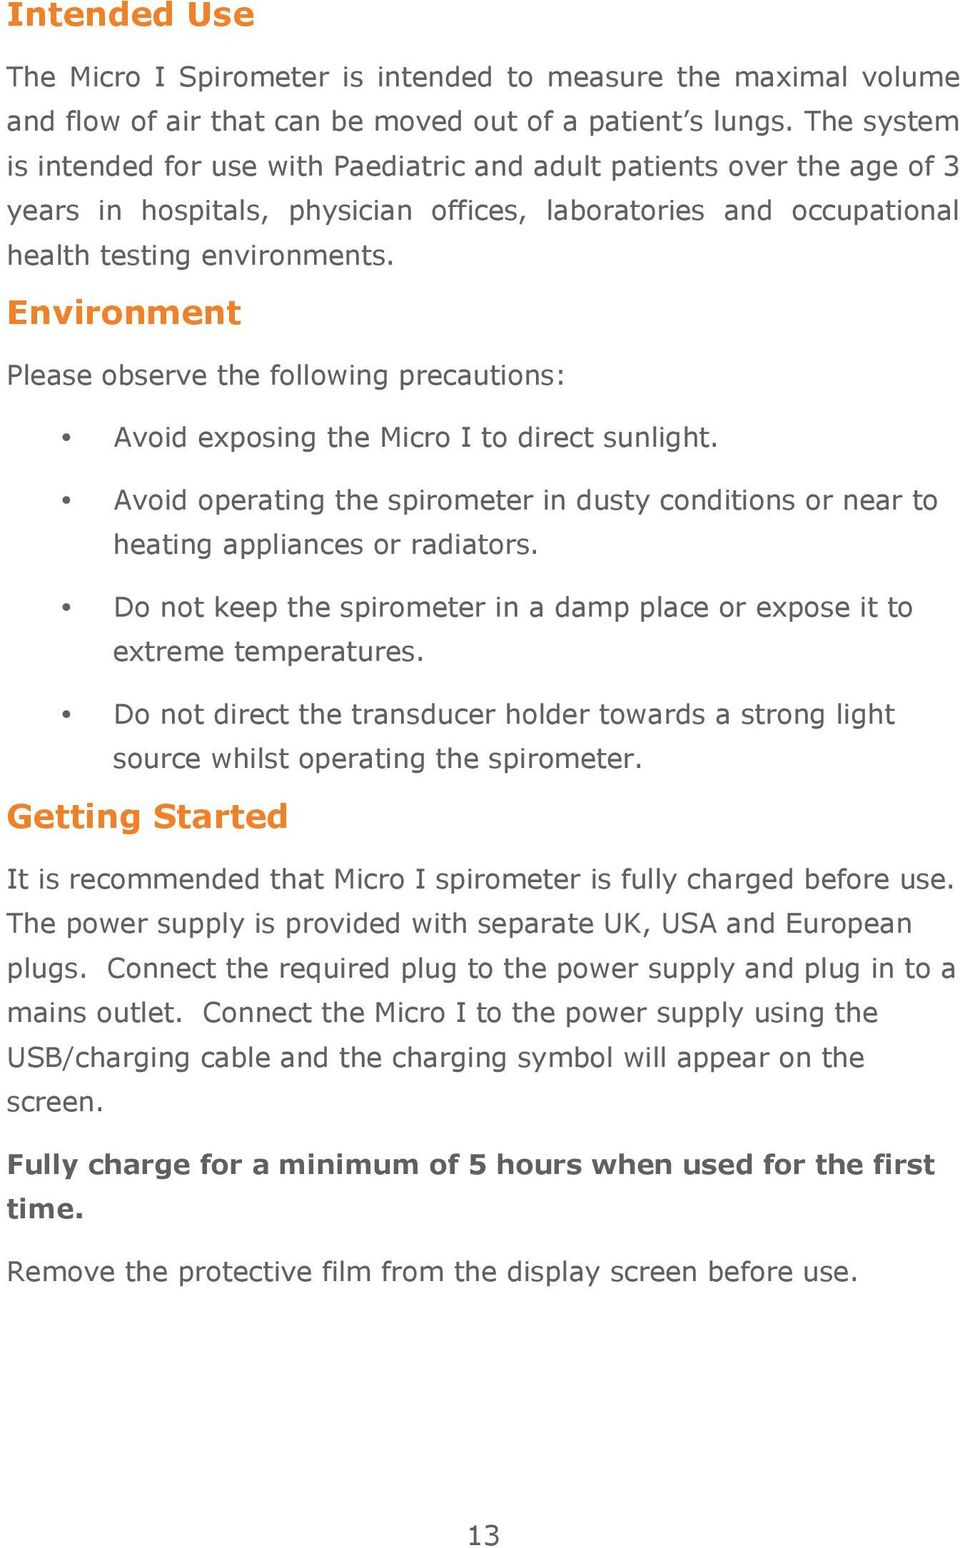 Environment Please observe the following precautions: Avoid exposing the Micro I to direct sunlight. Avoid operating the spirometer in dusty conditions or near to heating appliances or radiators.